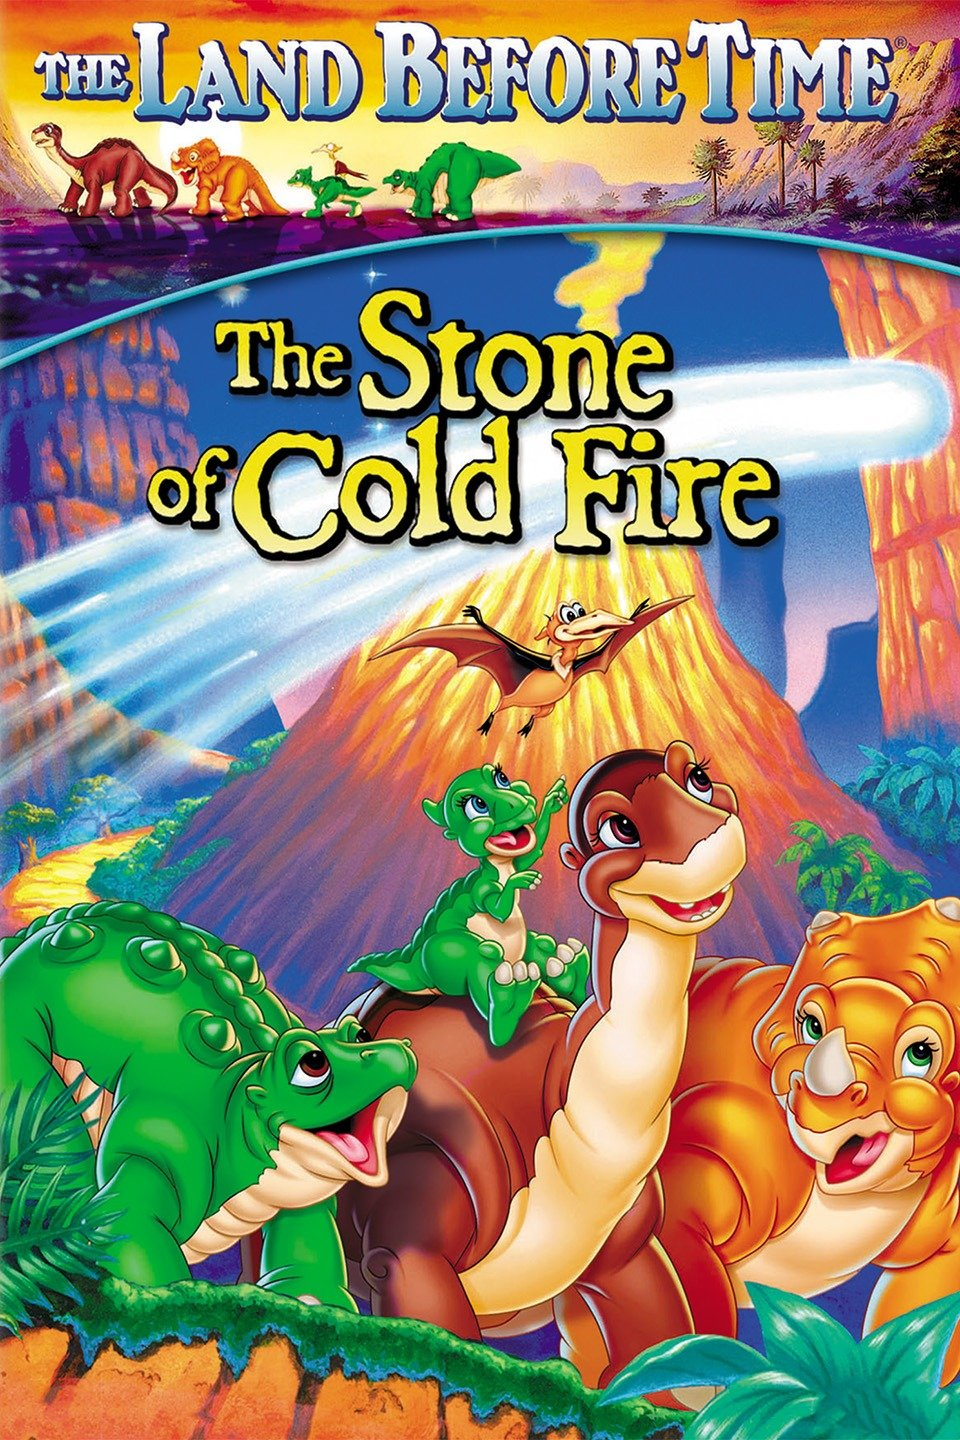 File:DVD cover of The Stone of Cold Fire.jpg